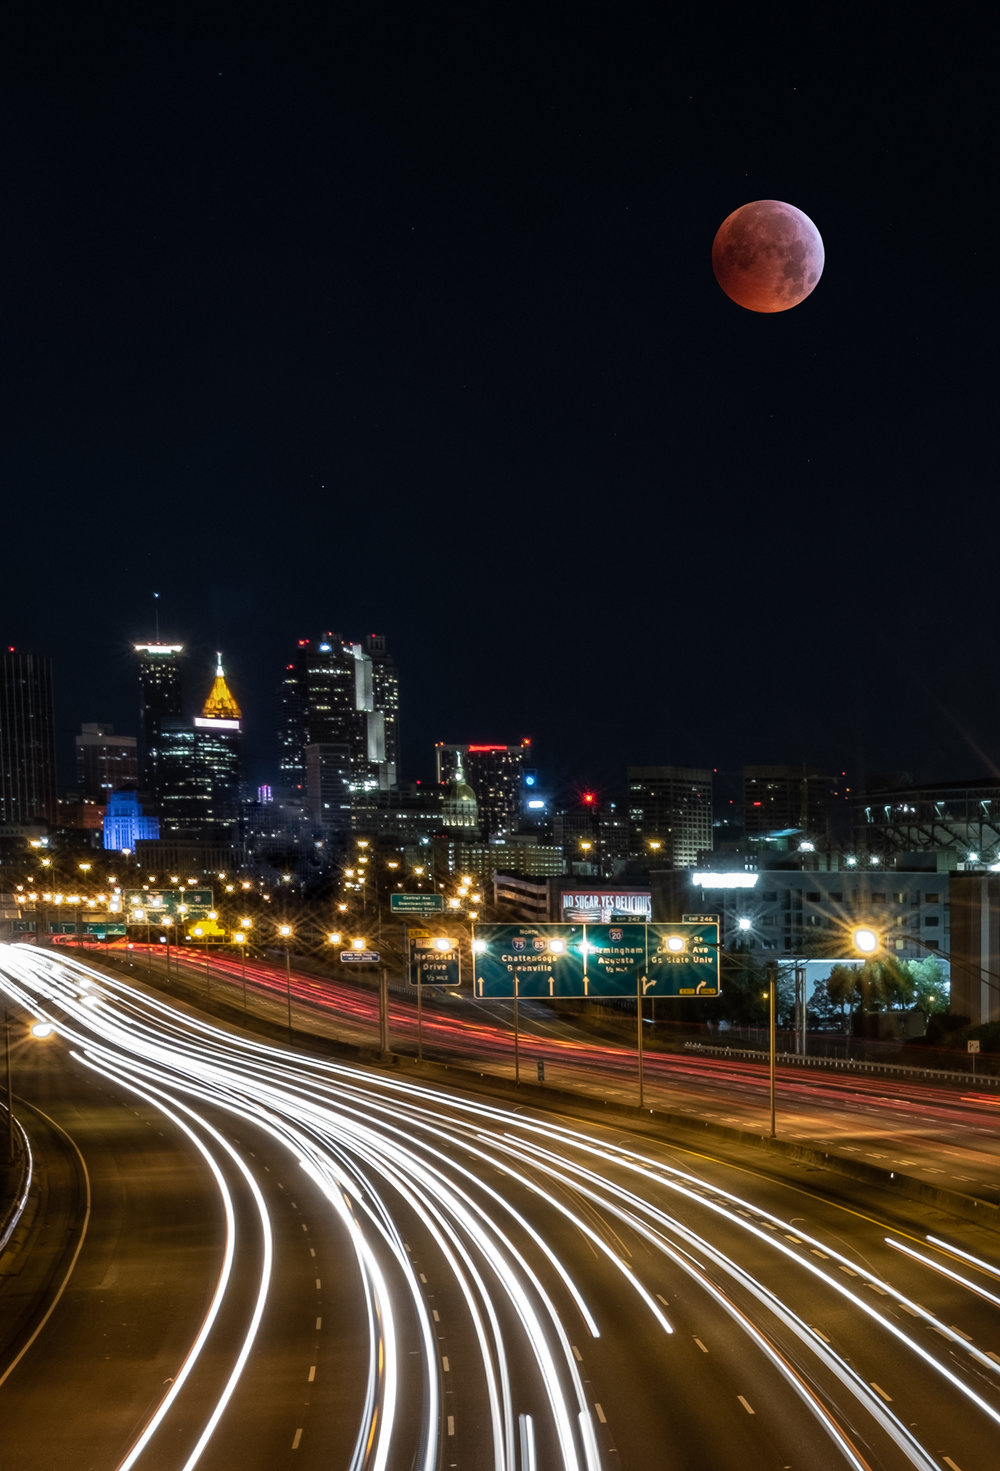 The 2019 super blood wolf moon (aka the lunar eclipse) over Atlanta. Foreground: 35mm lens, 25 seconds, f/16, ISO 200; background (moon): 600mm lens, 1/2 second, f/5.6, ISO 3200.